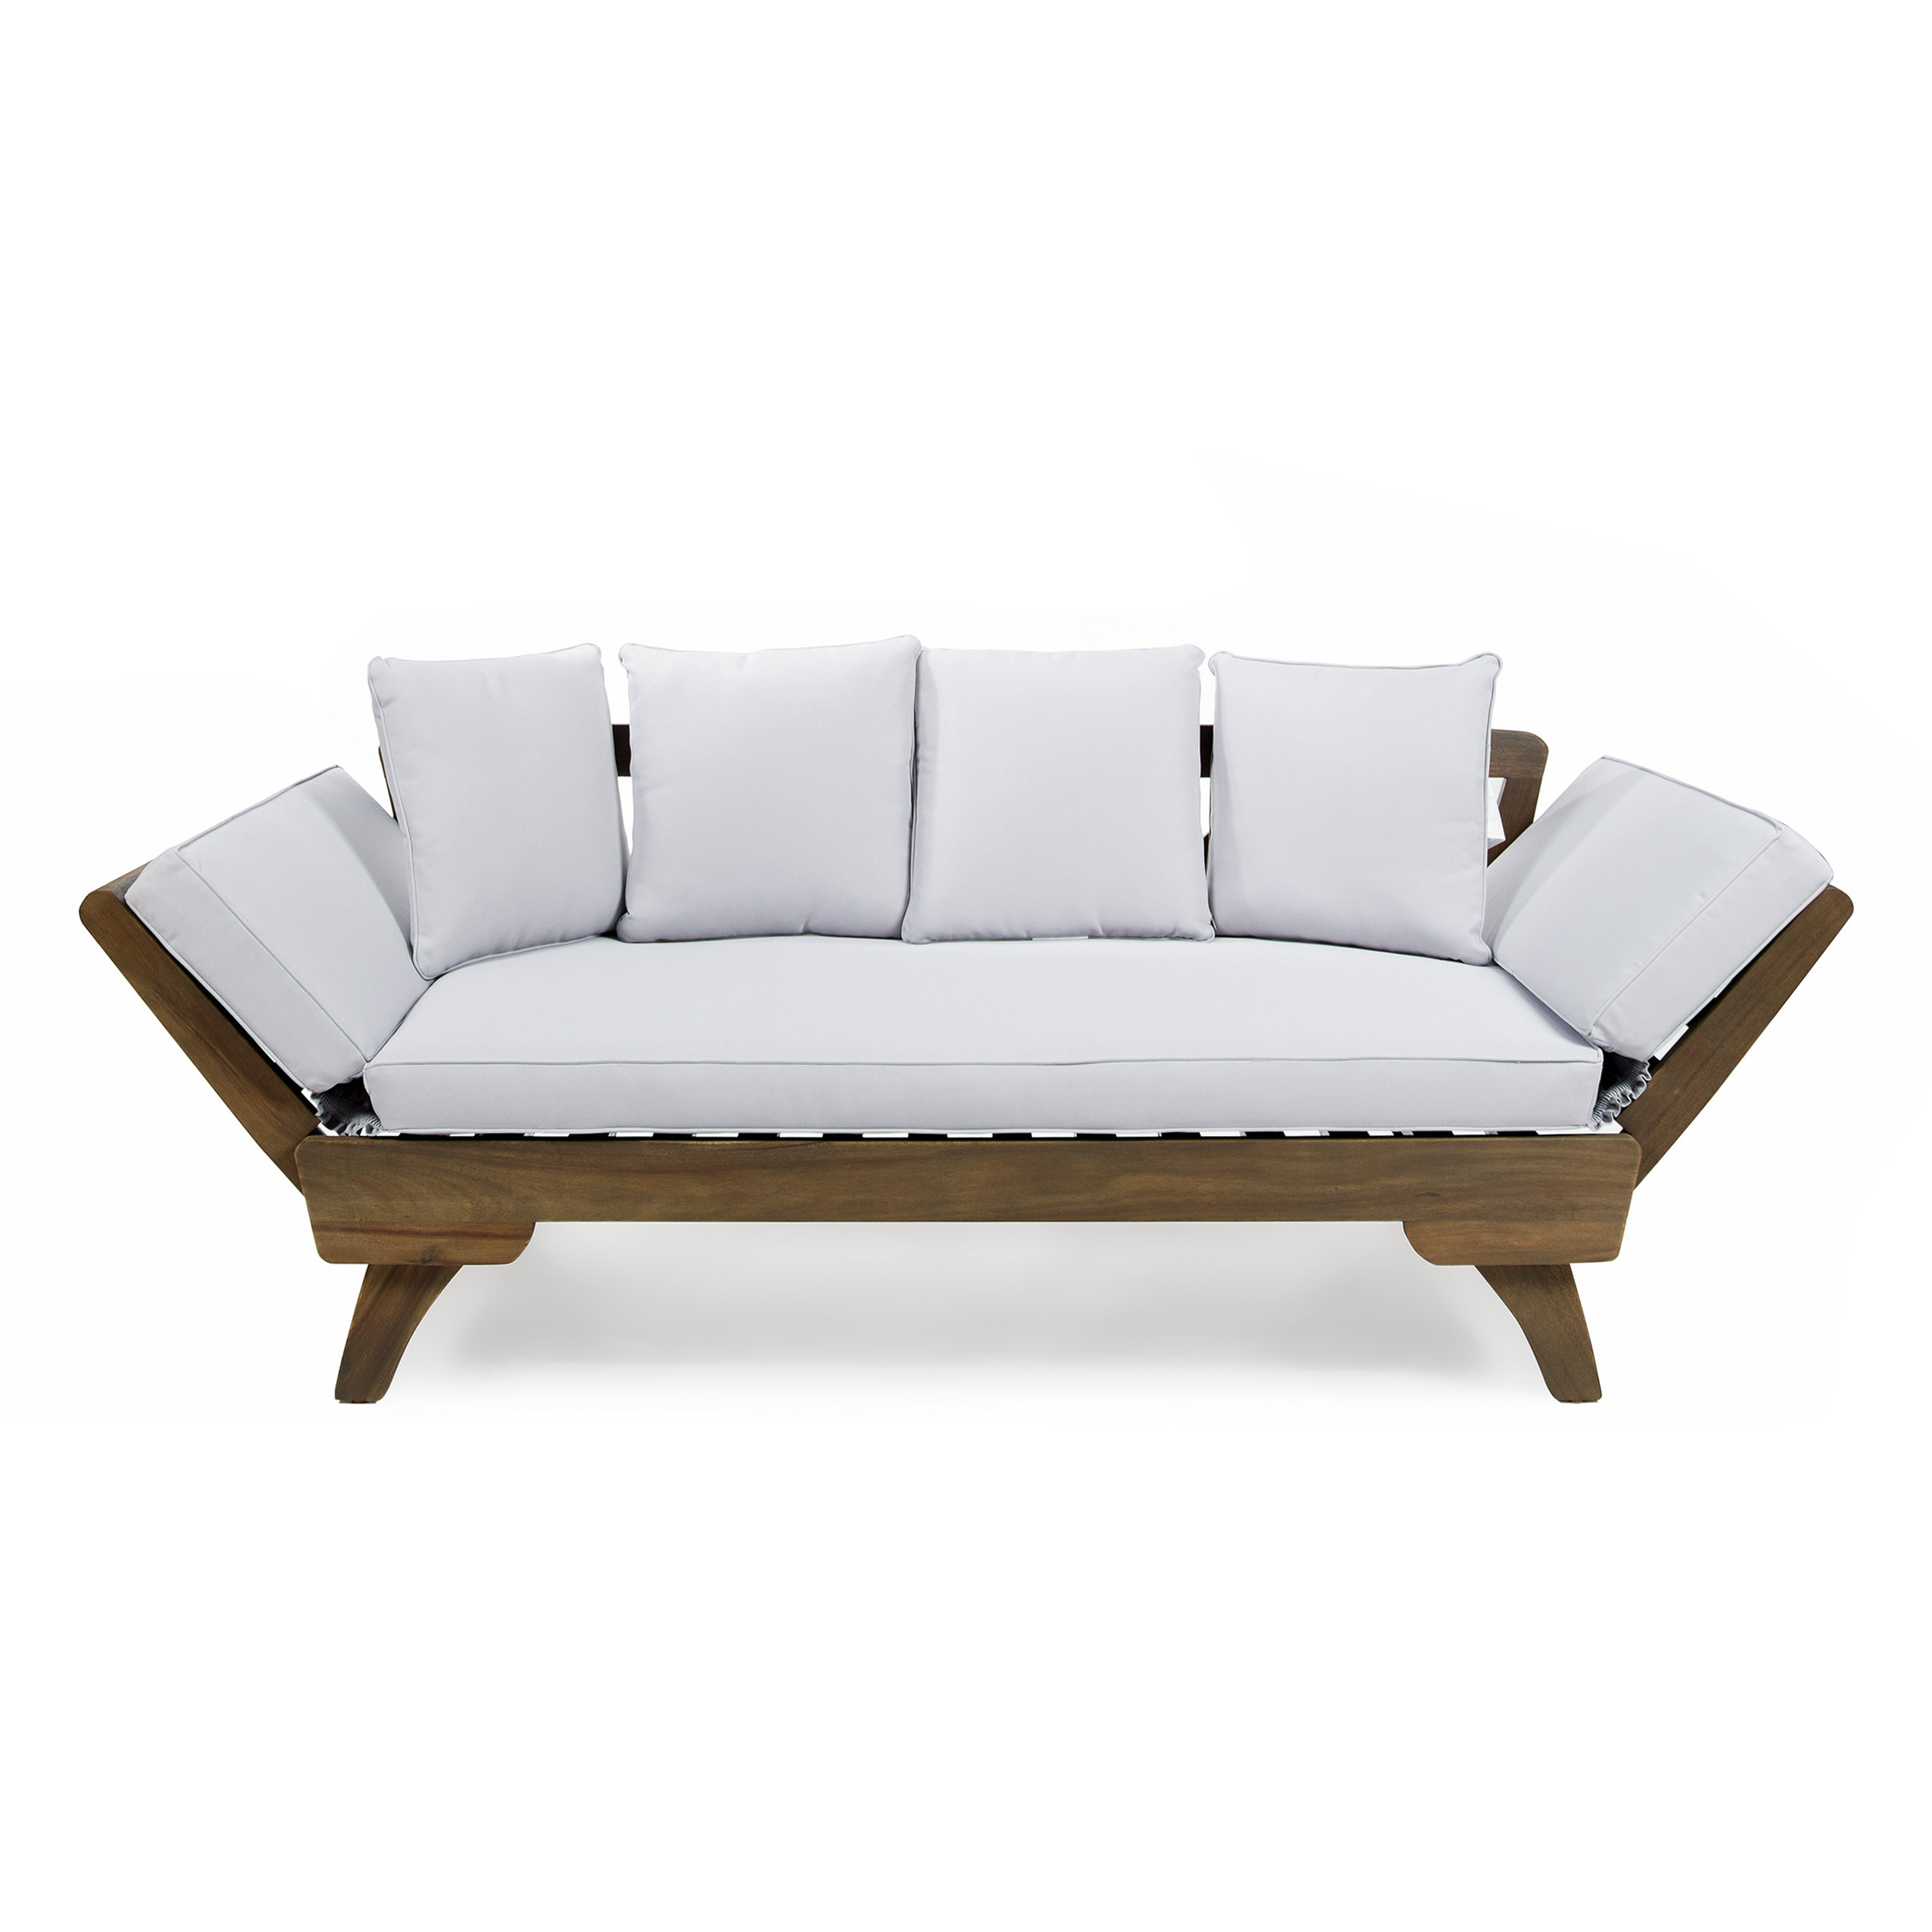 Lavina Outdoor Patio Daybeds With Cushions Regarding Most Popular Union Rustic Ellanti Teak Patio Daybed With Cushions (View 10 of 20)